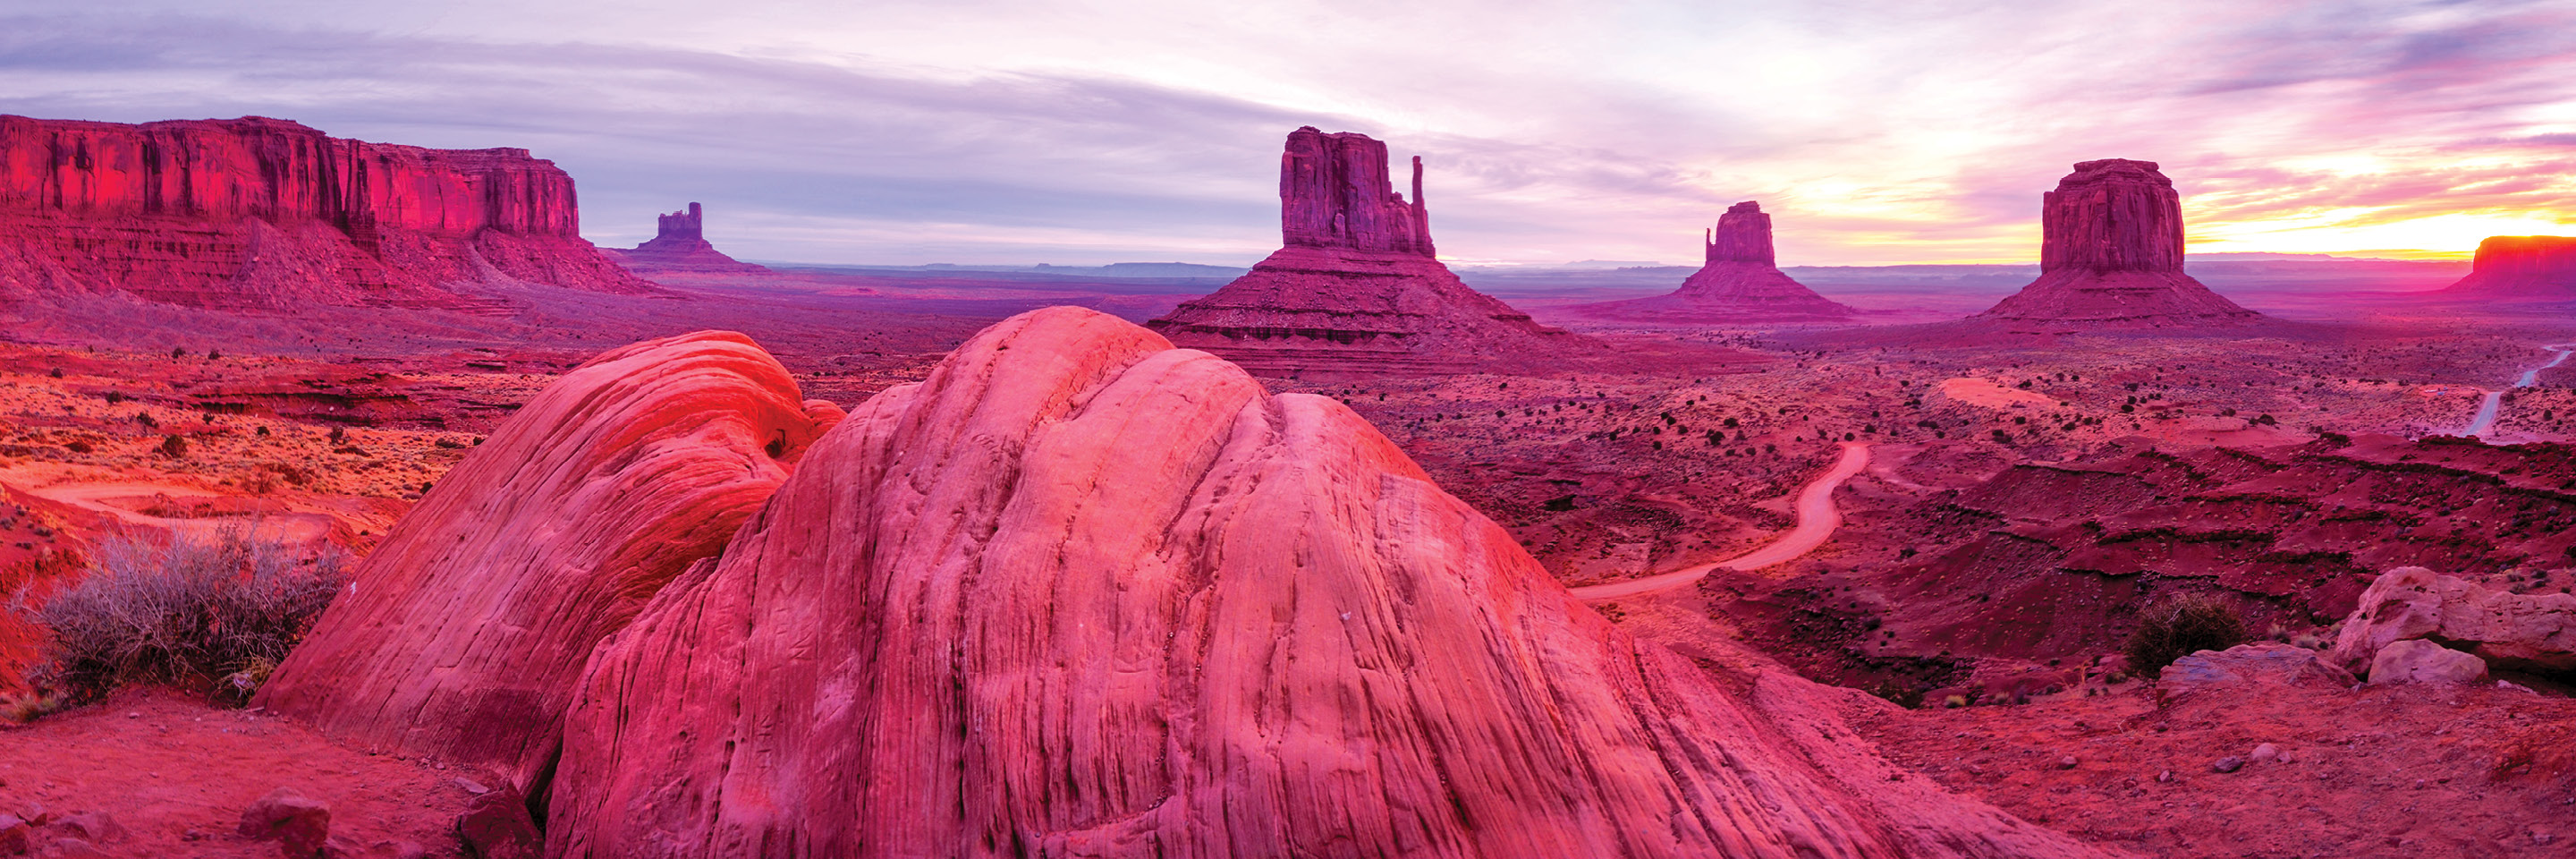 Highlights of the Canyonlands